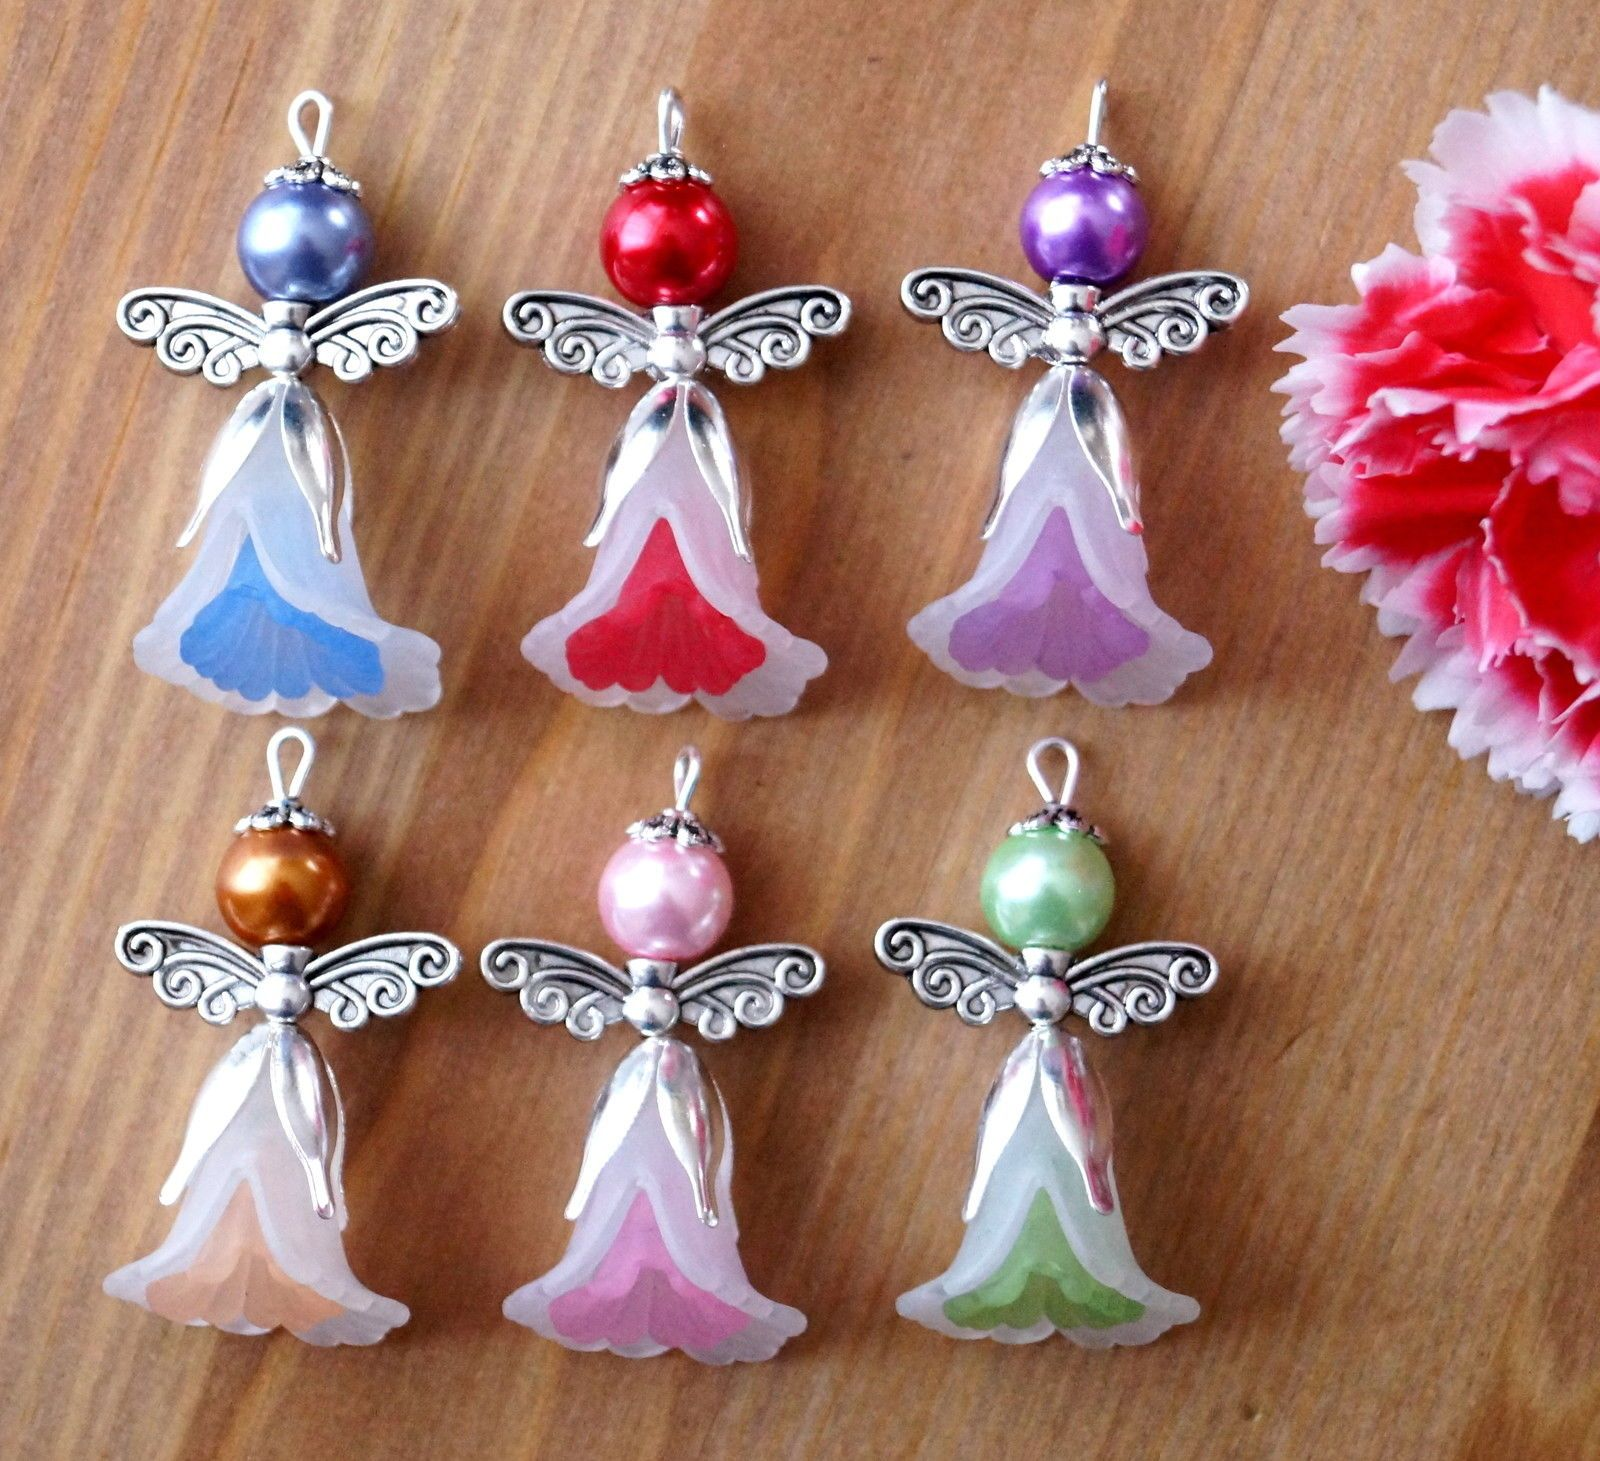 6x Angel Charms Pendants Lucite Flower Beads Silver Wings 2 Tones White | eBay #kreativehandwerke